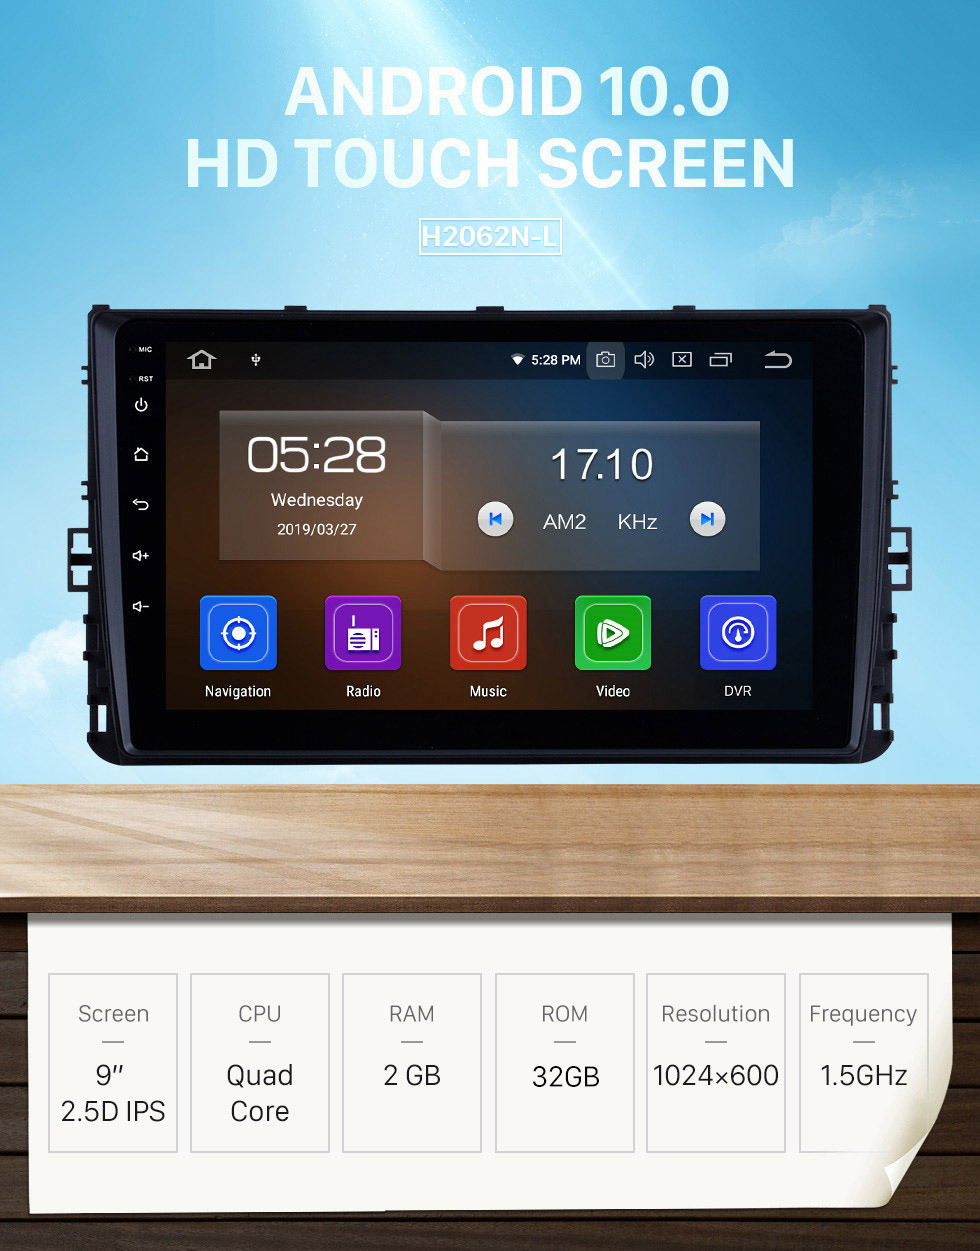 Seicane OEM 9 inch Android 10.0 HD Touchscreen GPS navigation system Radio For 2018 VW Volkswagen Universal Bluetooth Support 3G/4G WiFi DVR OBD II Carplay Steering Remote Control